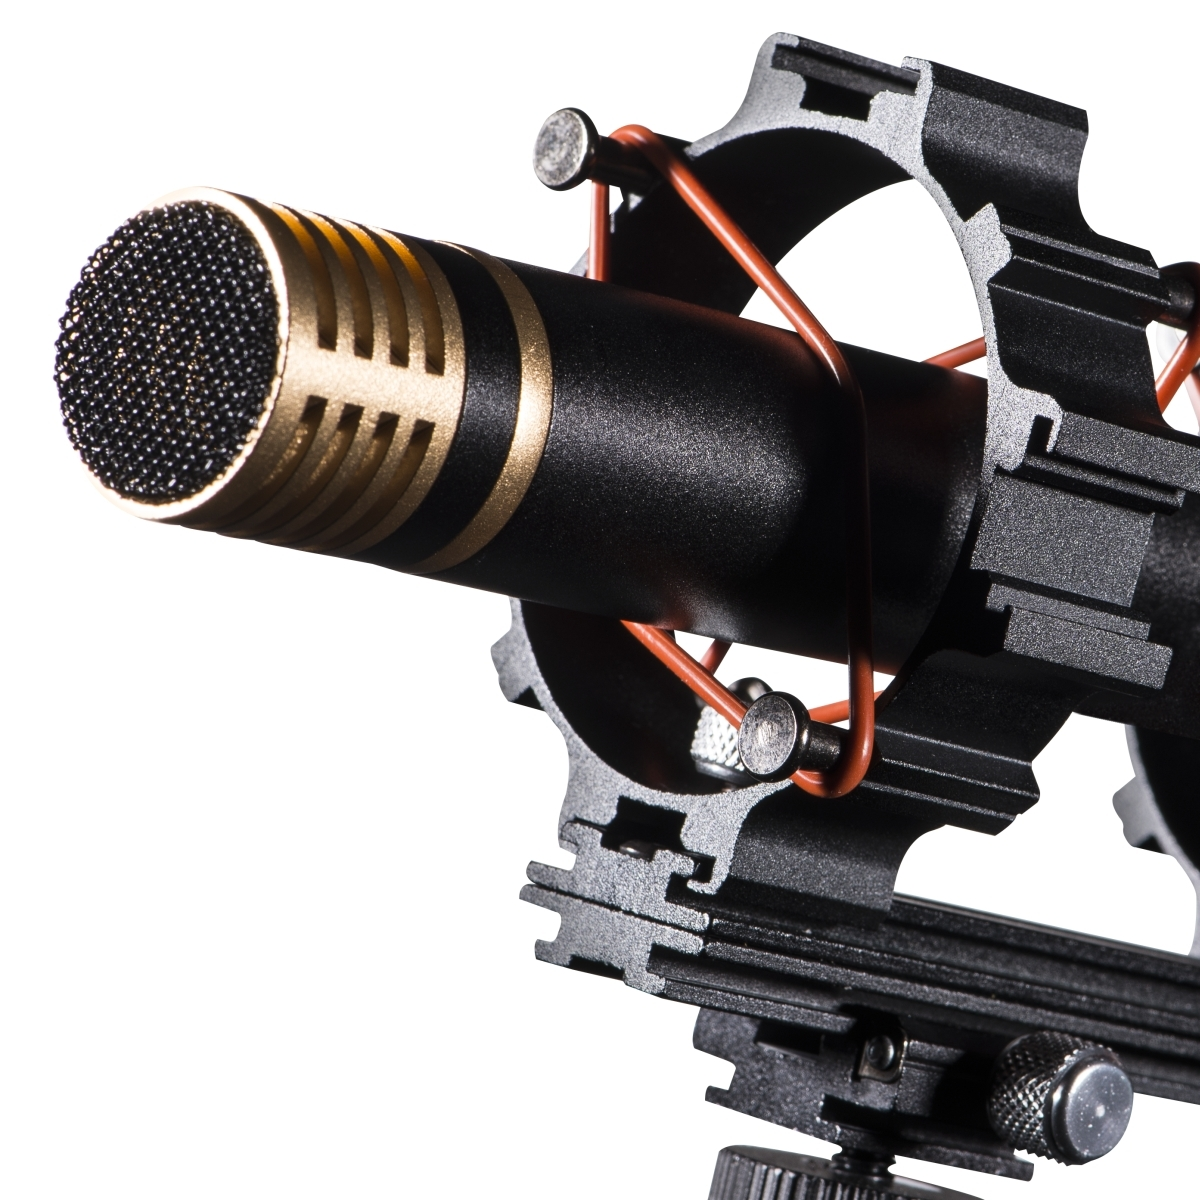 Walimex pro microphone holder+ accessories rails